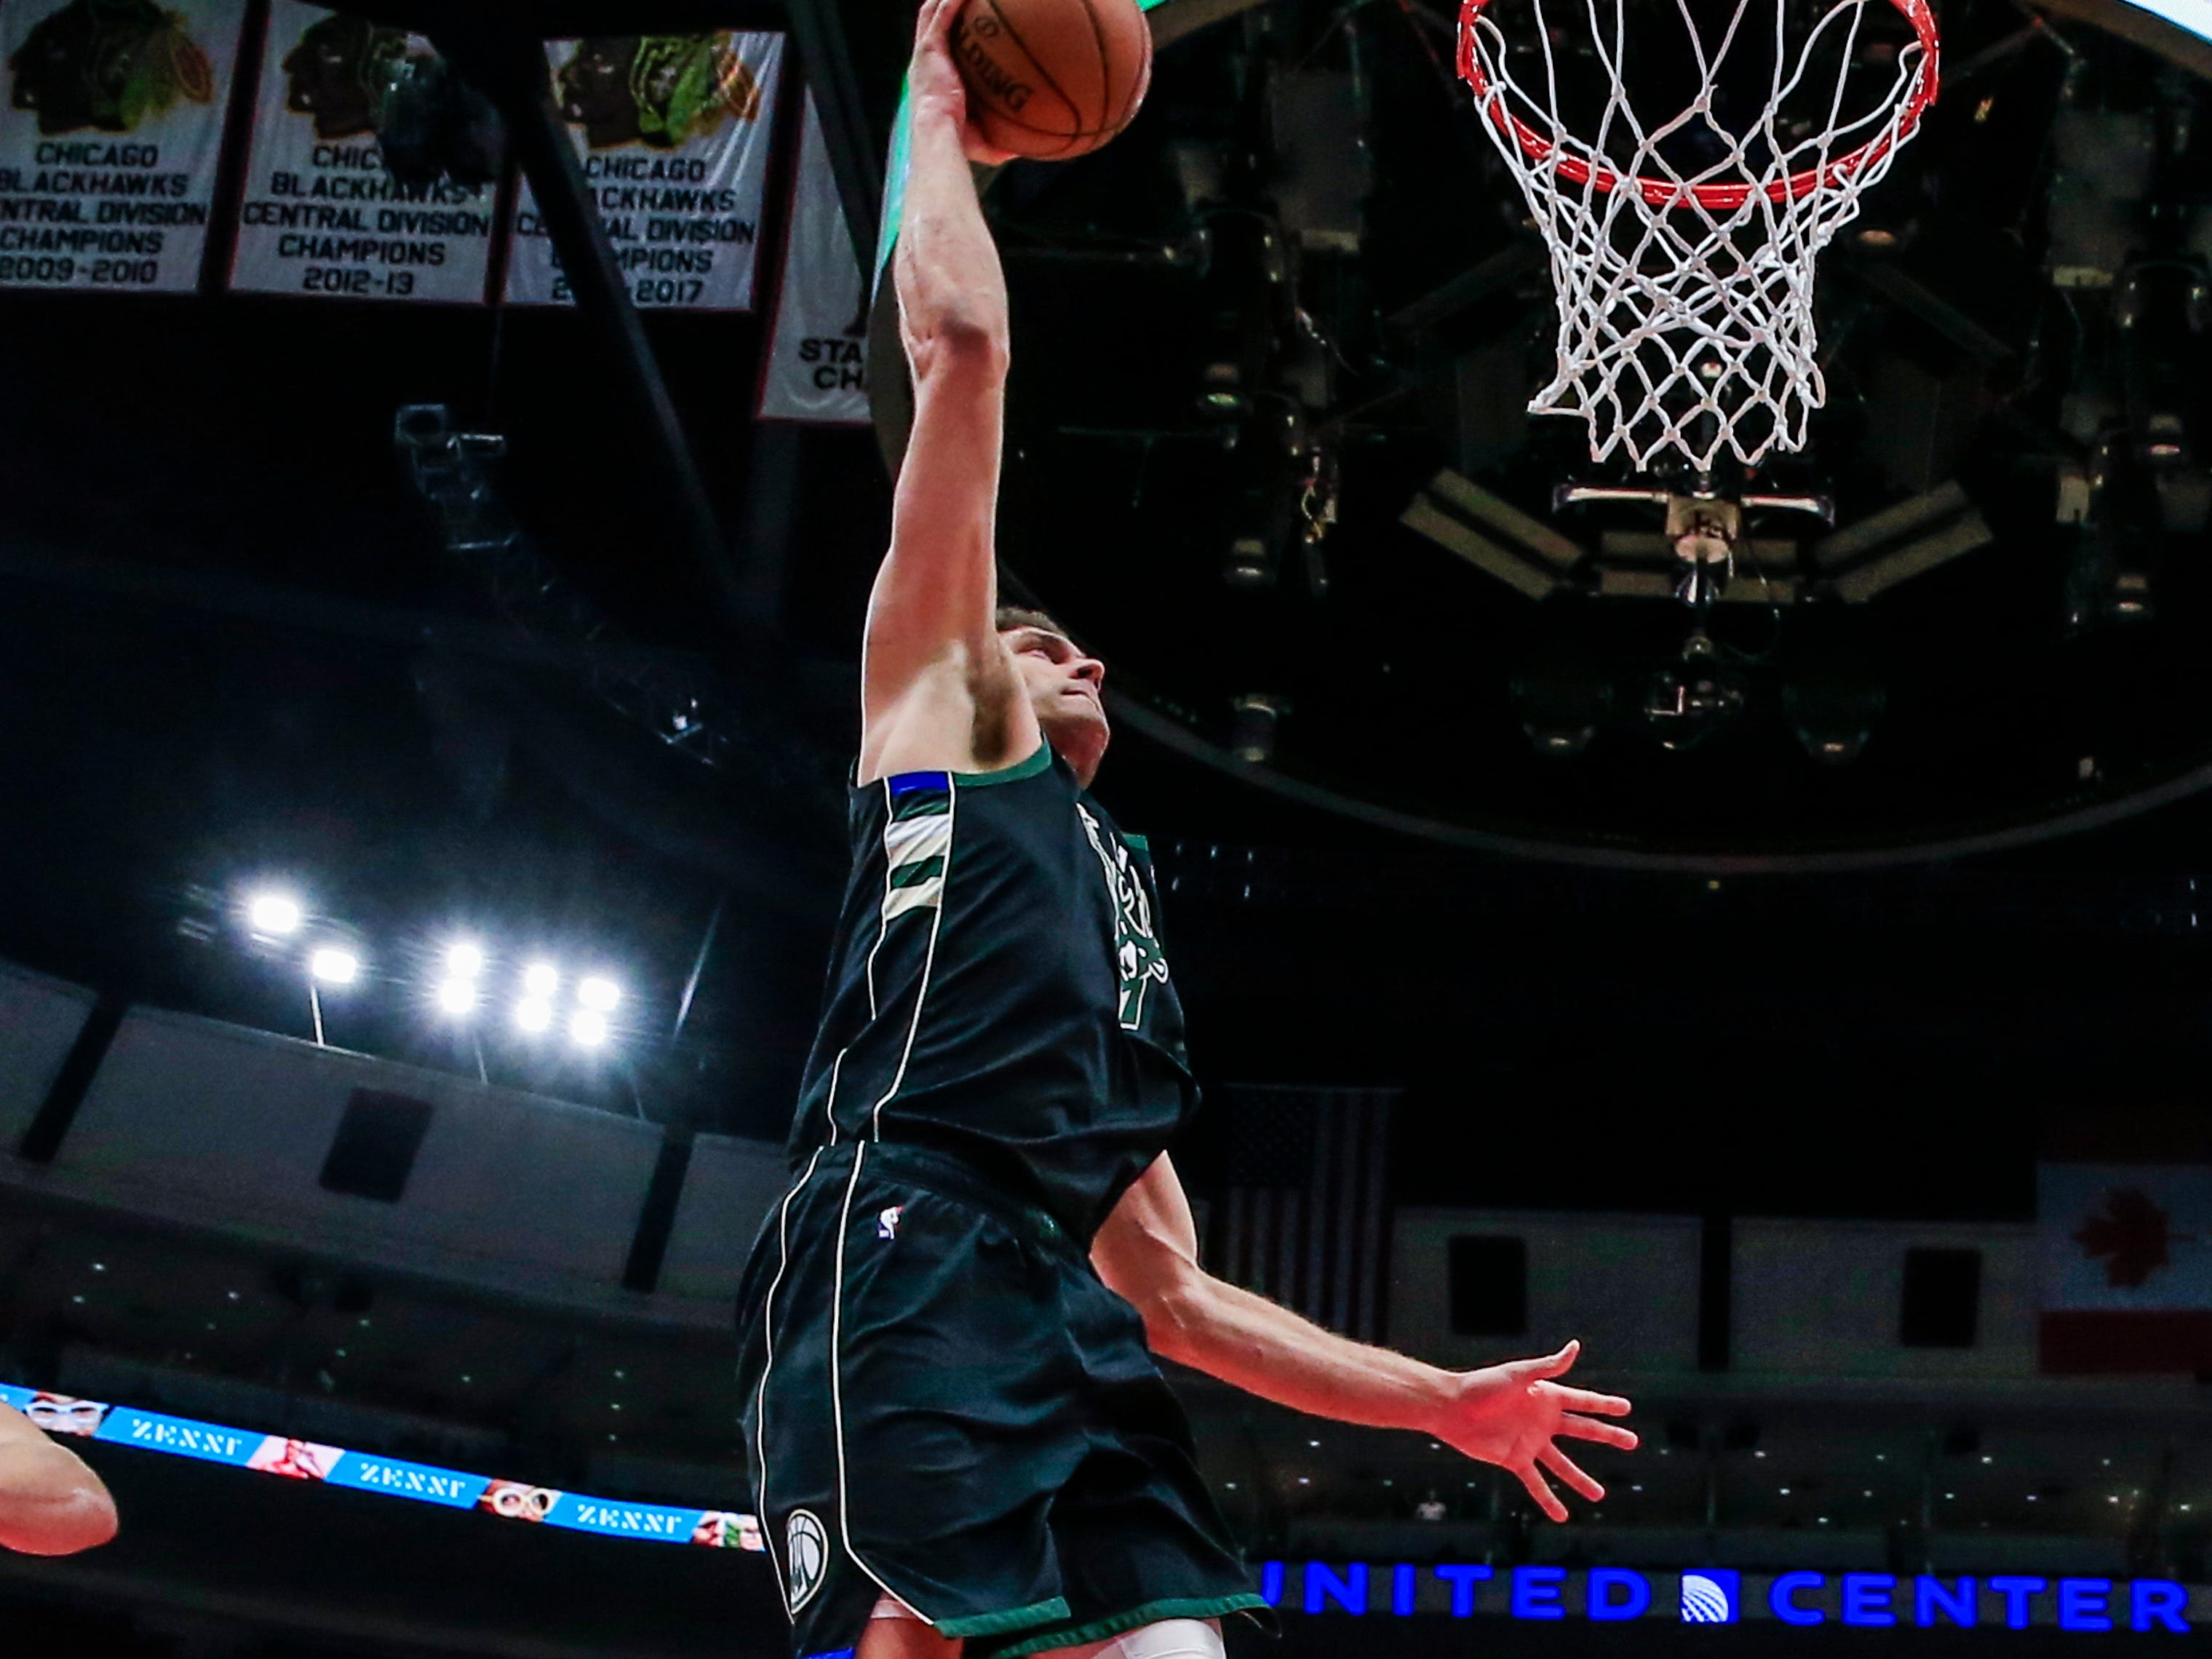 Bucks center Brook Lopez is set to power home a dunk as Lauri Markkanen (left) and Robin Lopez of the Bulls look on during the second half Monday.